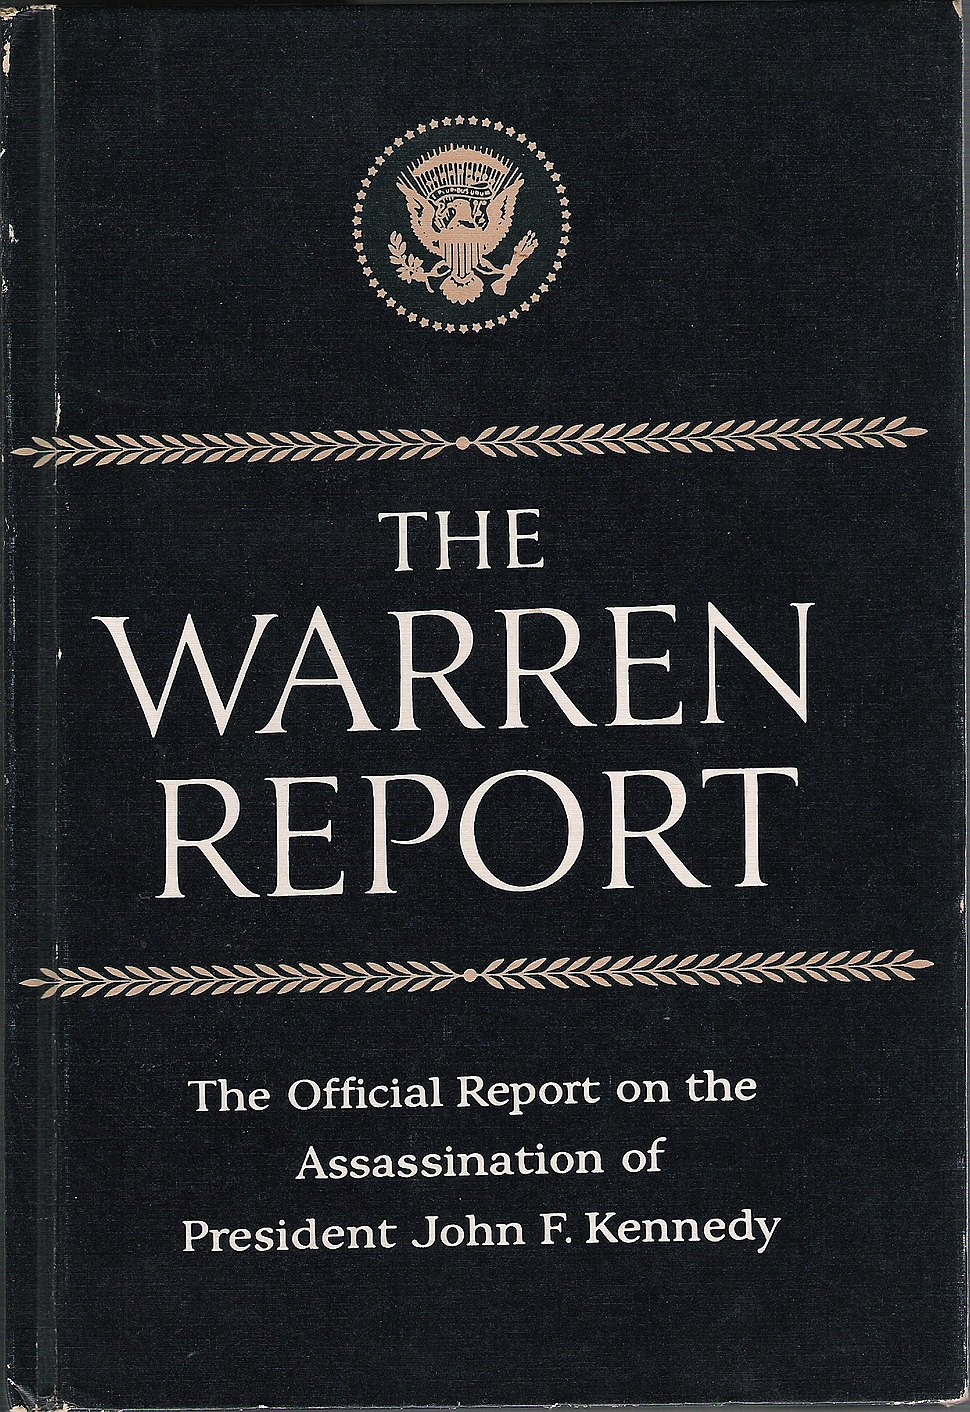 WarrenReport-cover1